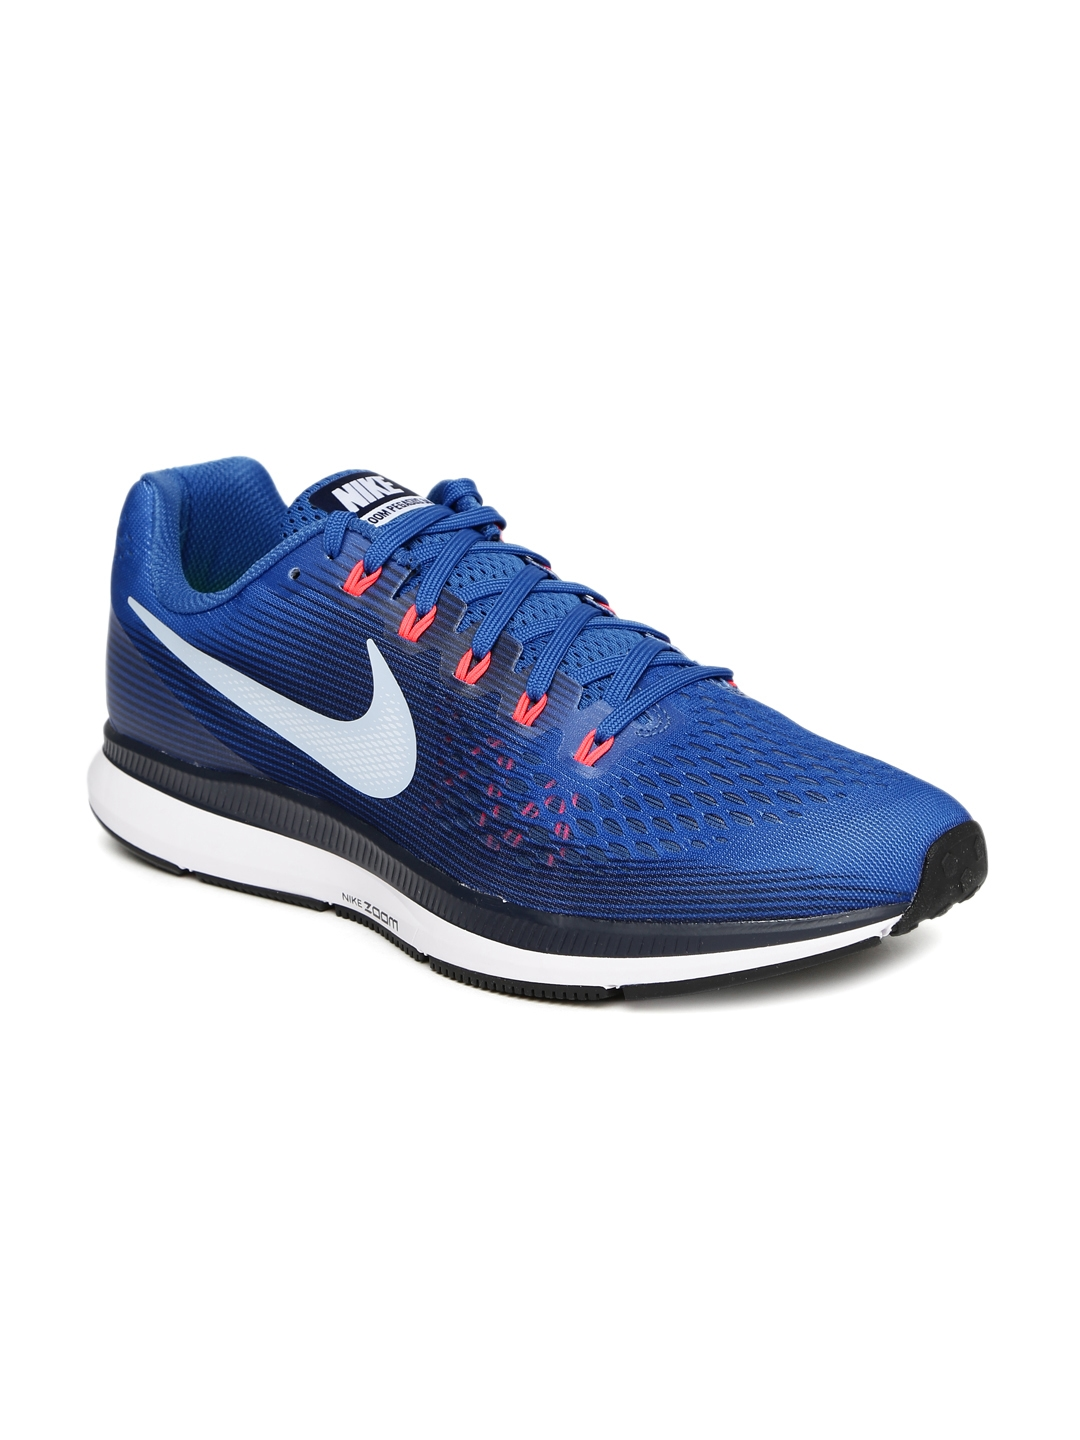 2182dfd7f08e Buy Nike Men Blue AIR ZOOM PEGASUS 34 Running Shoes - Sports Shoes ...